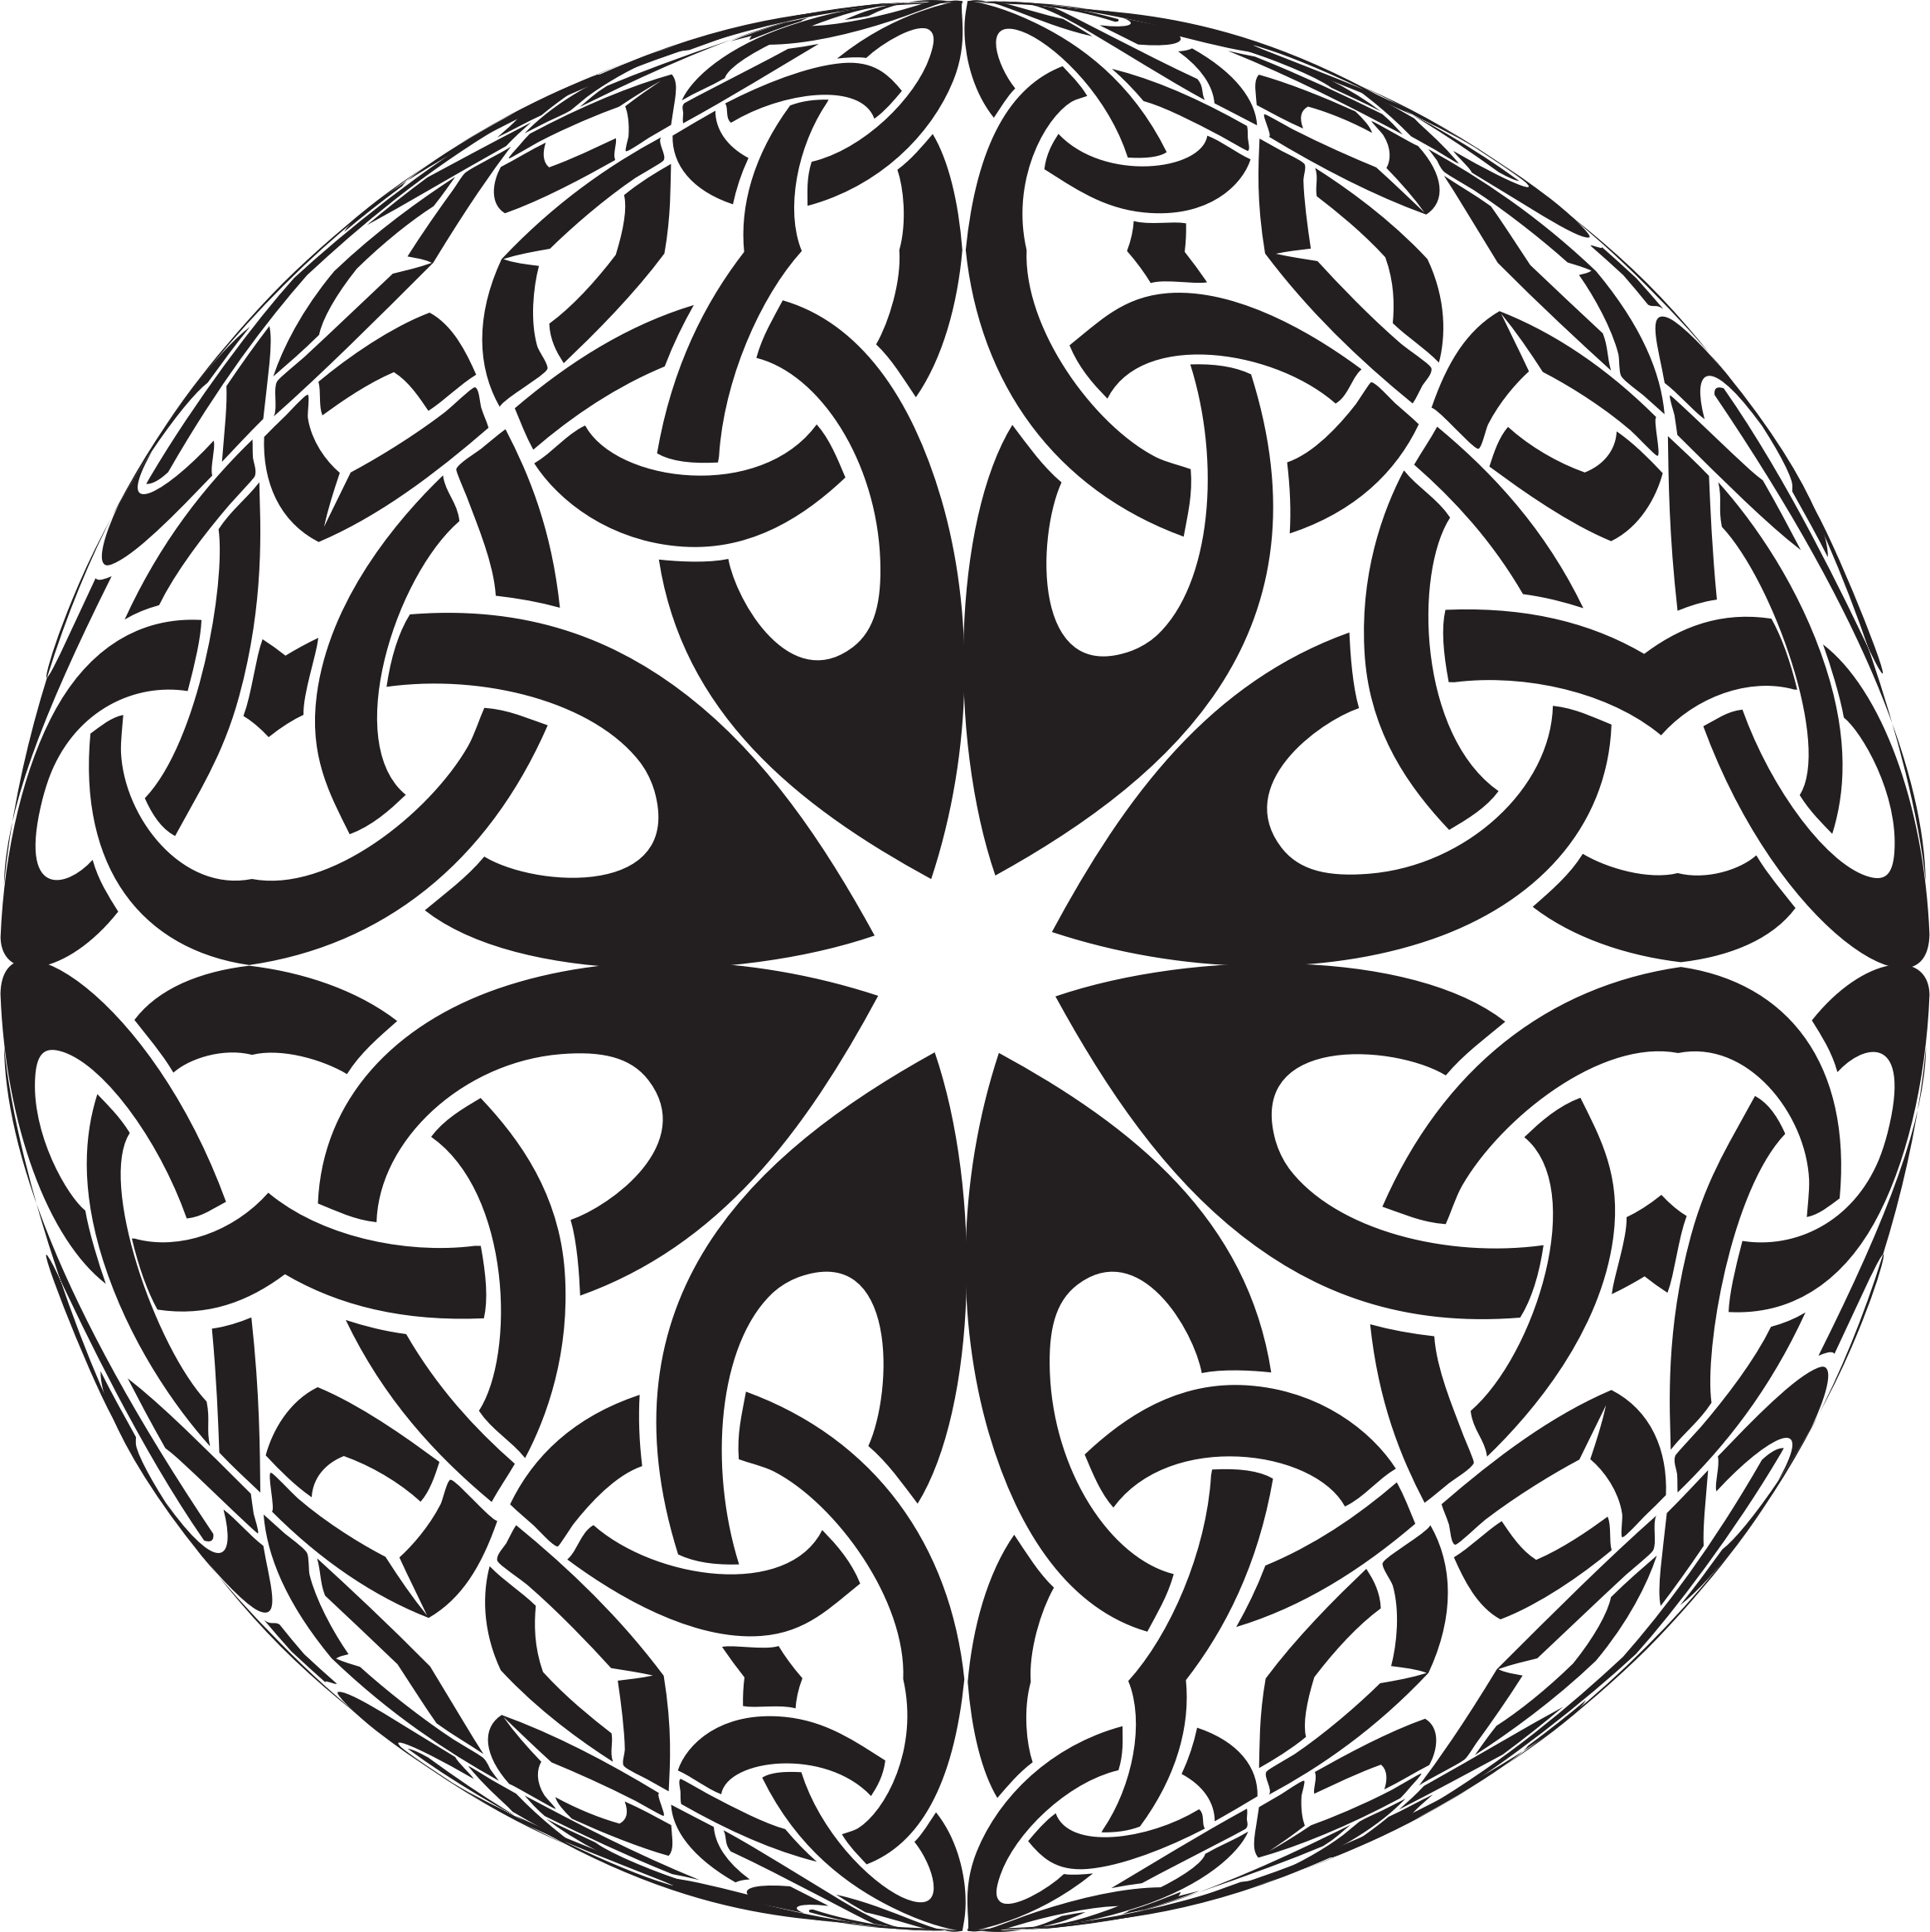 Celtic Knot Sphere by GDJ